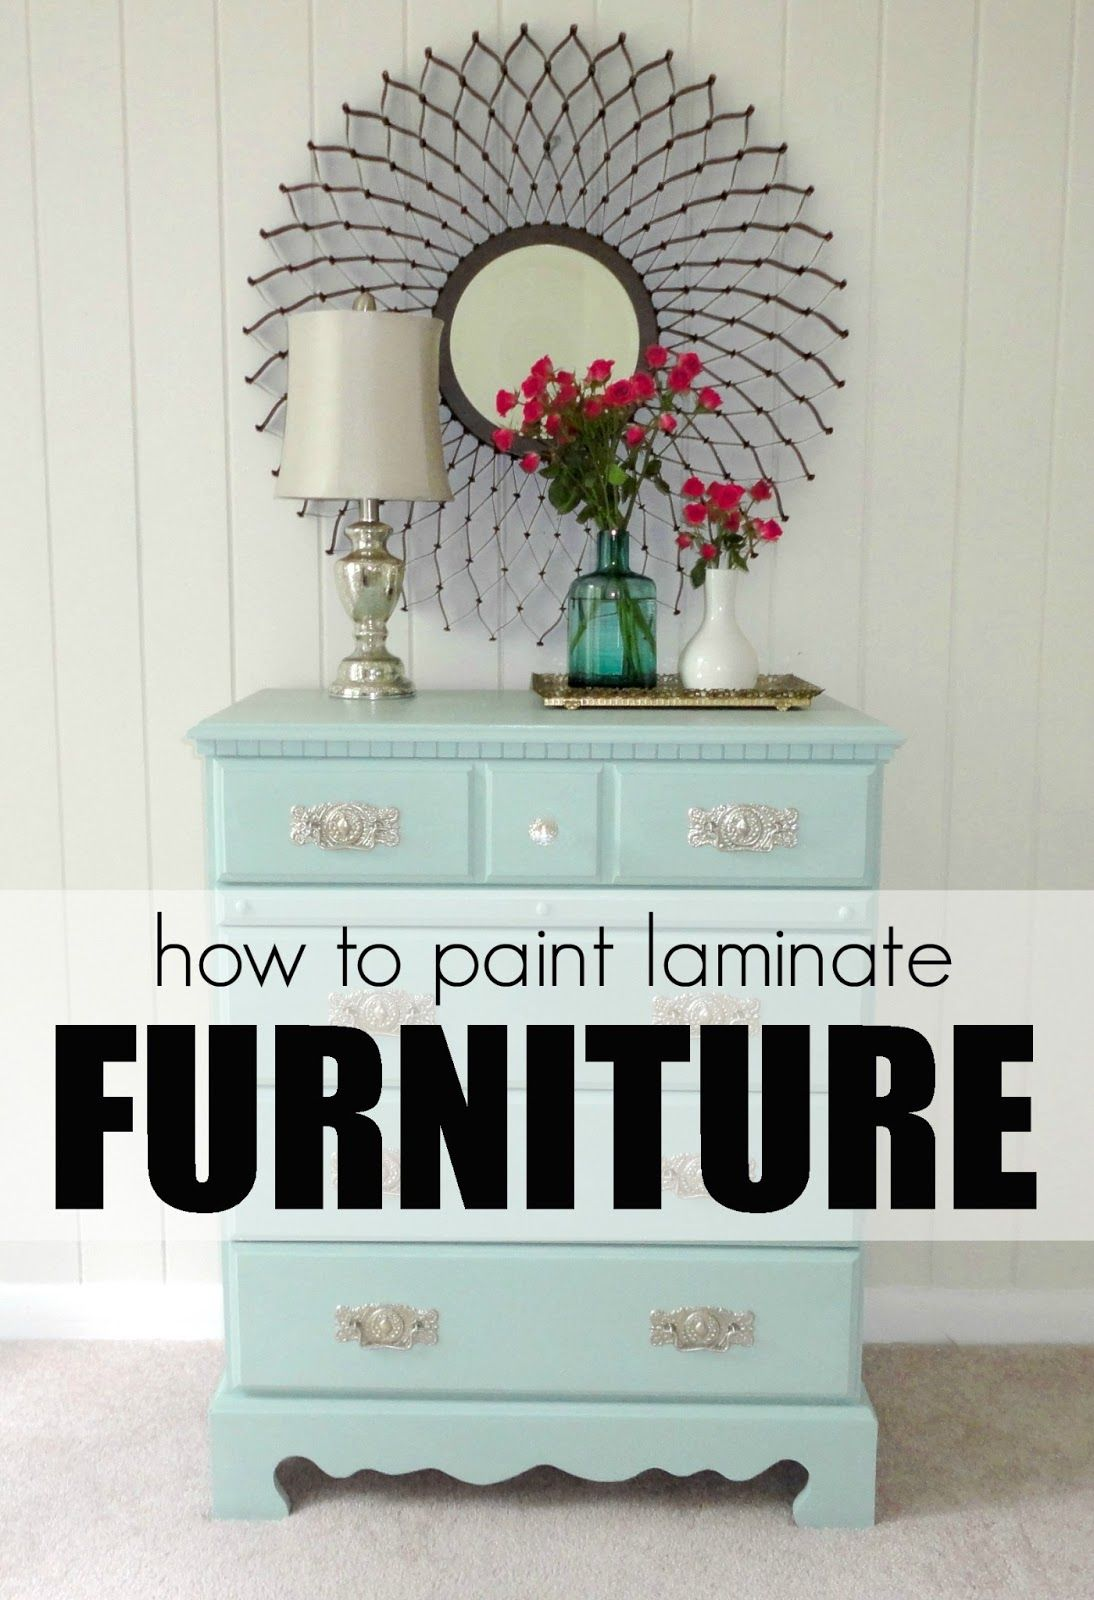 How To Paint Laminate Furniture In 3 Easy Steps Amazing Tips Love This Crafty Ideas